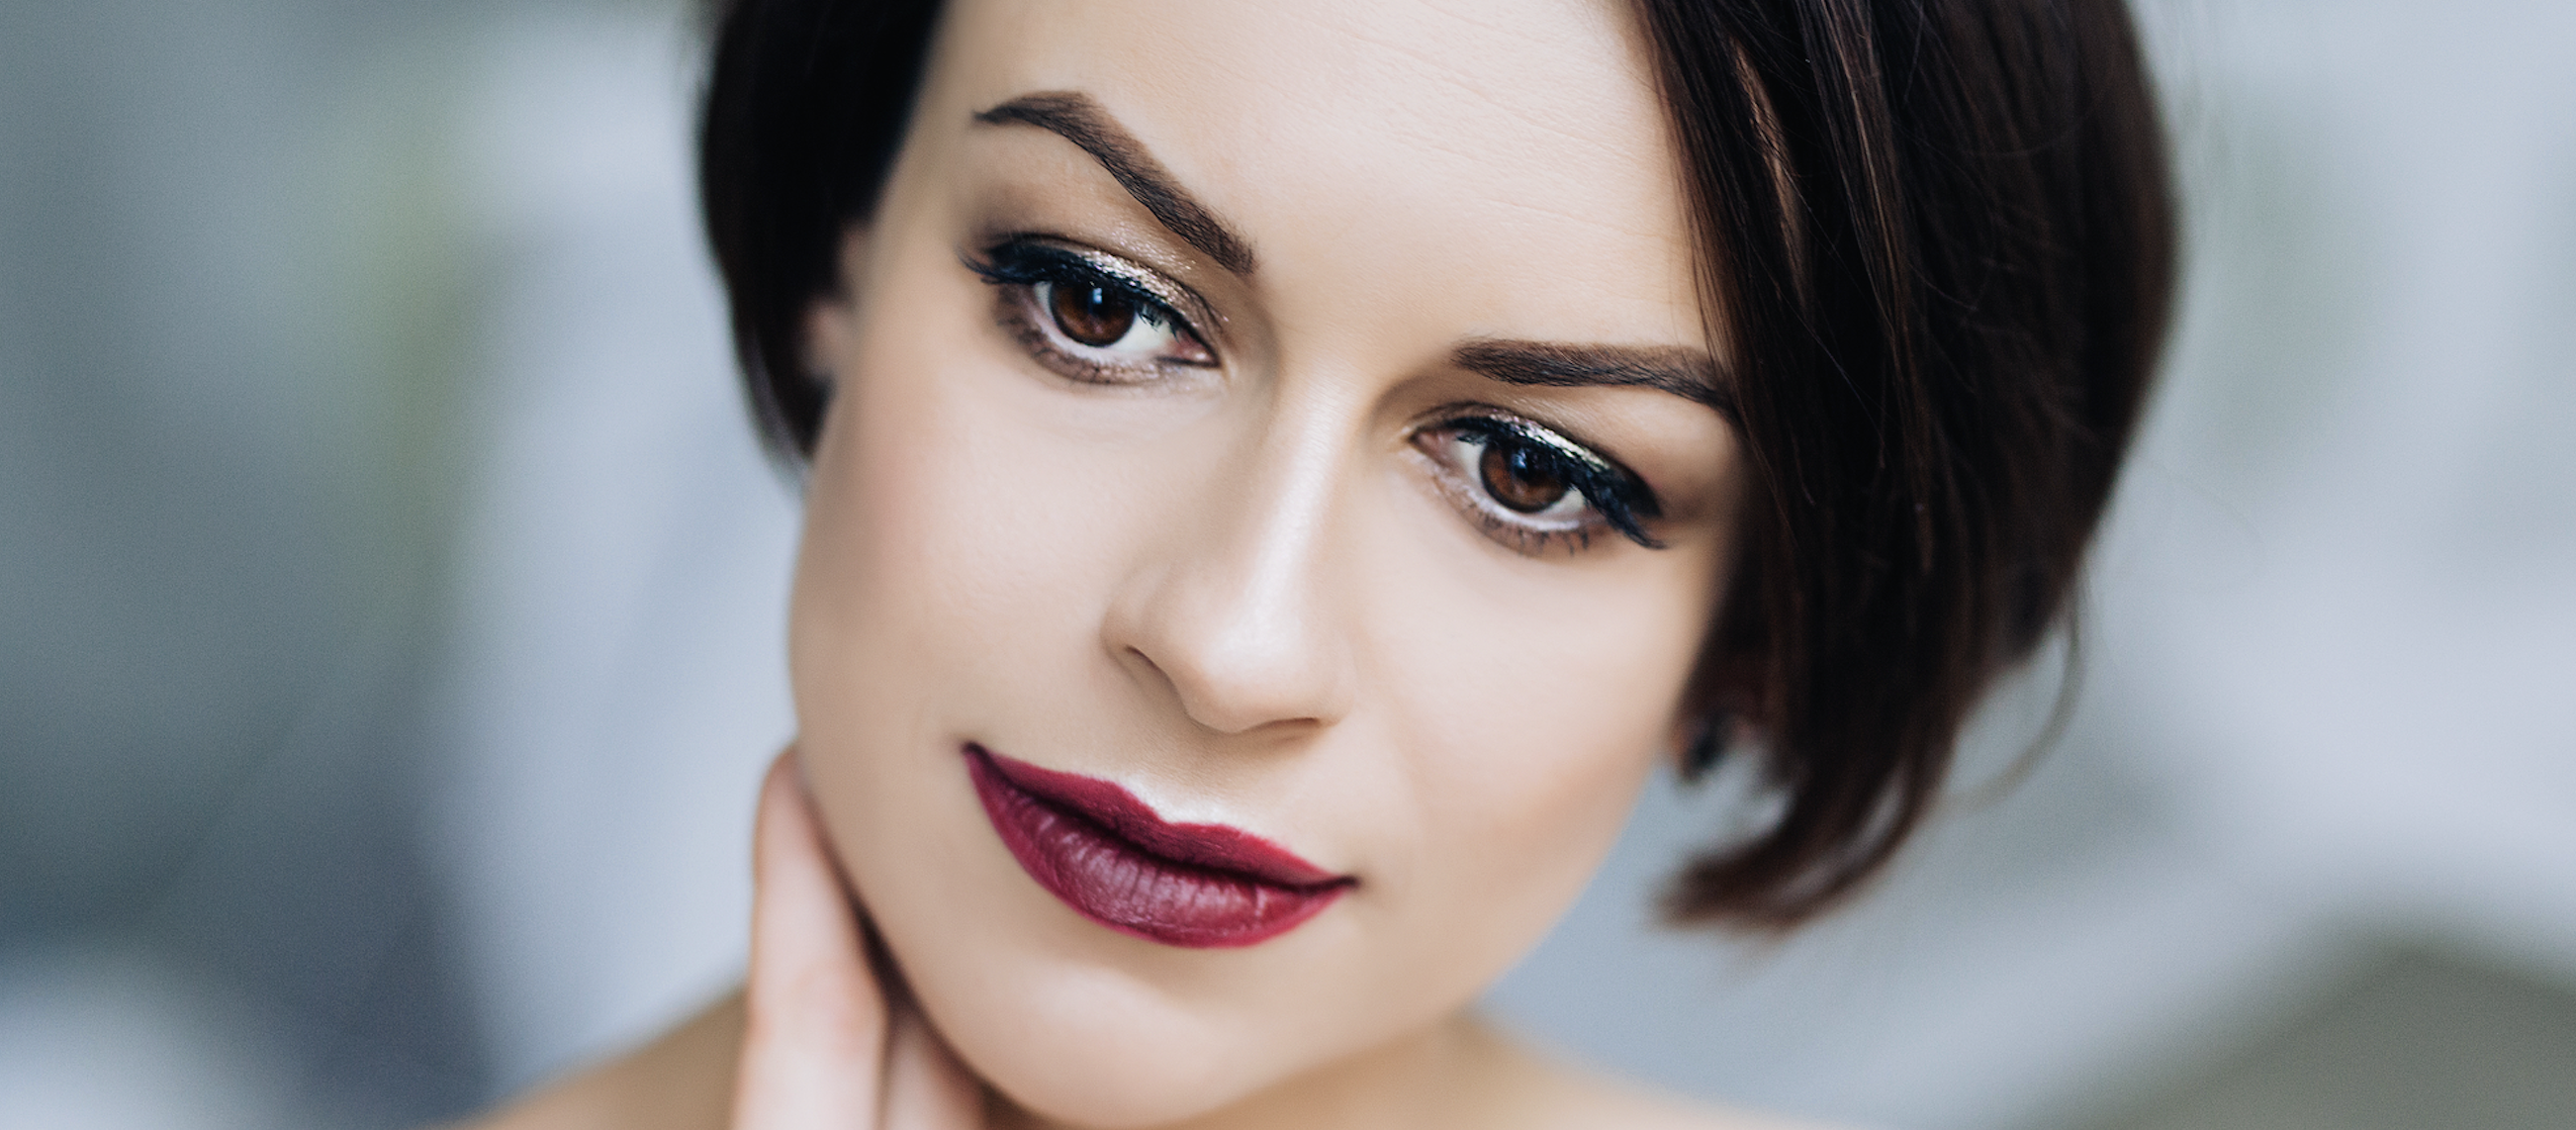 FROM MICROBOTOX TO MICRONEEDLING